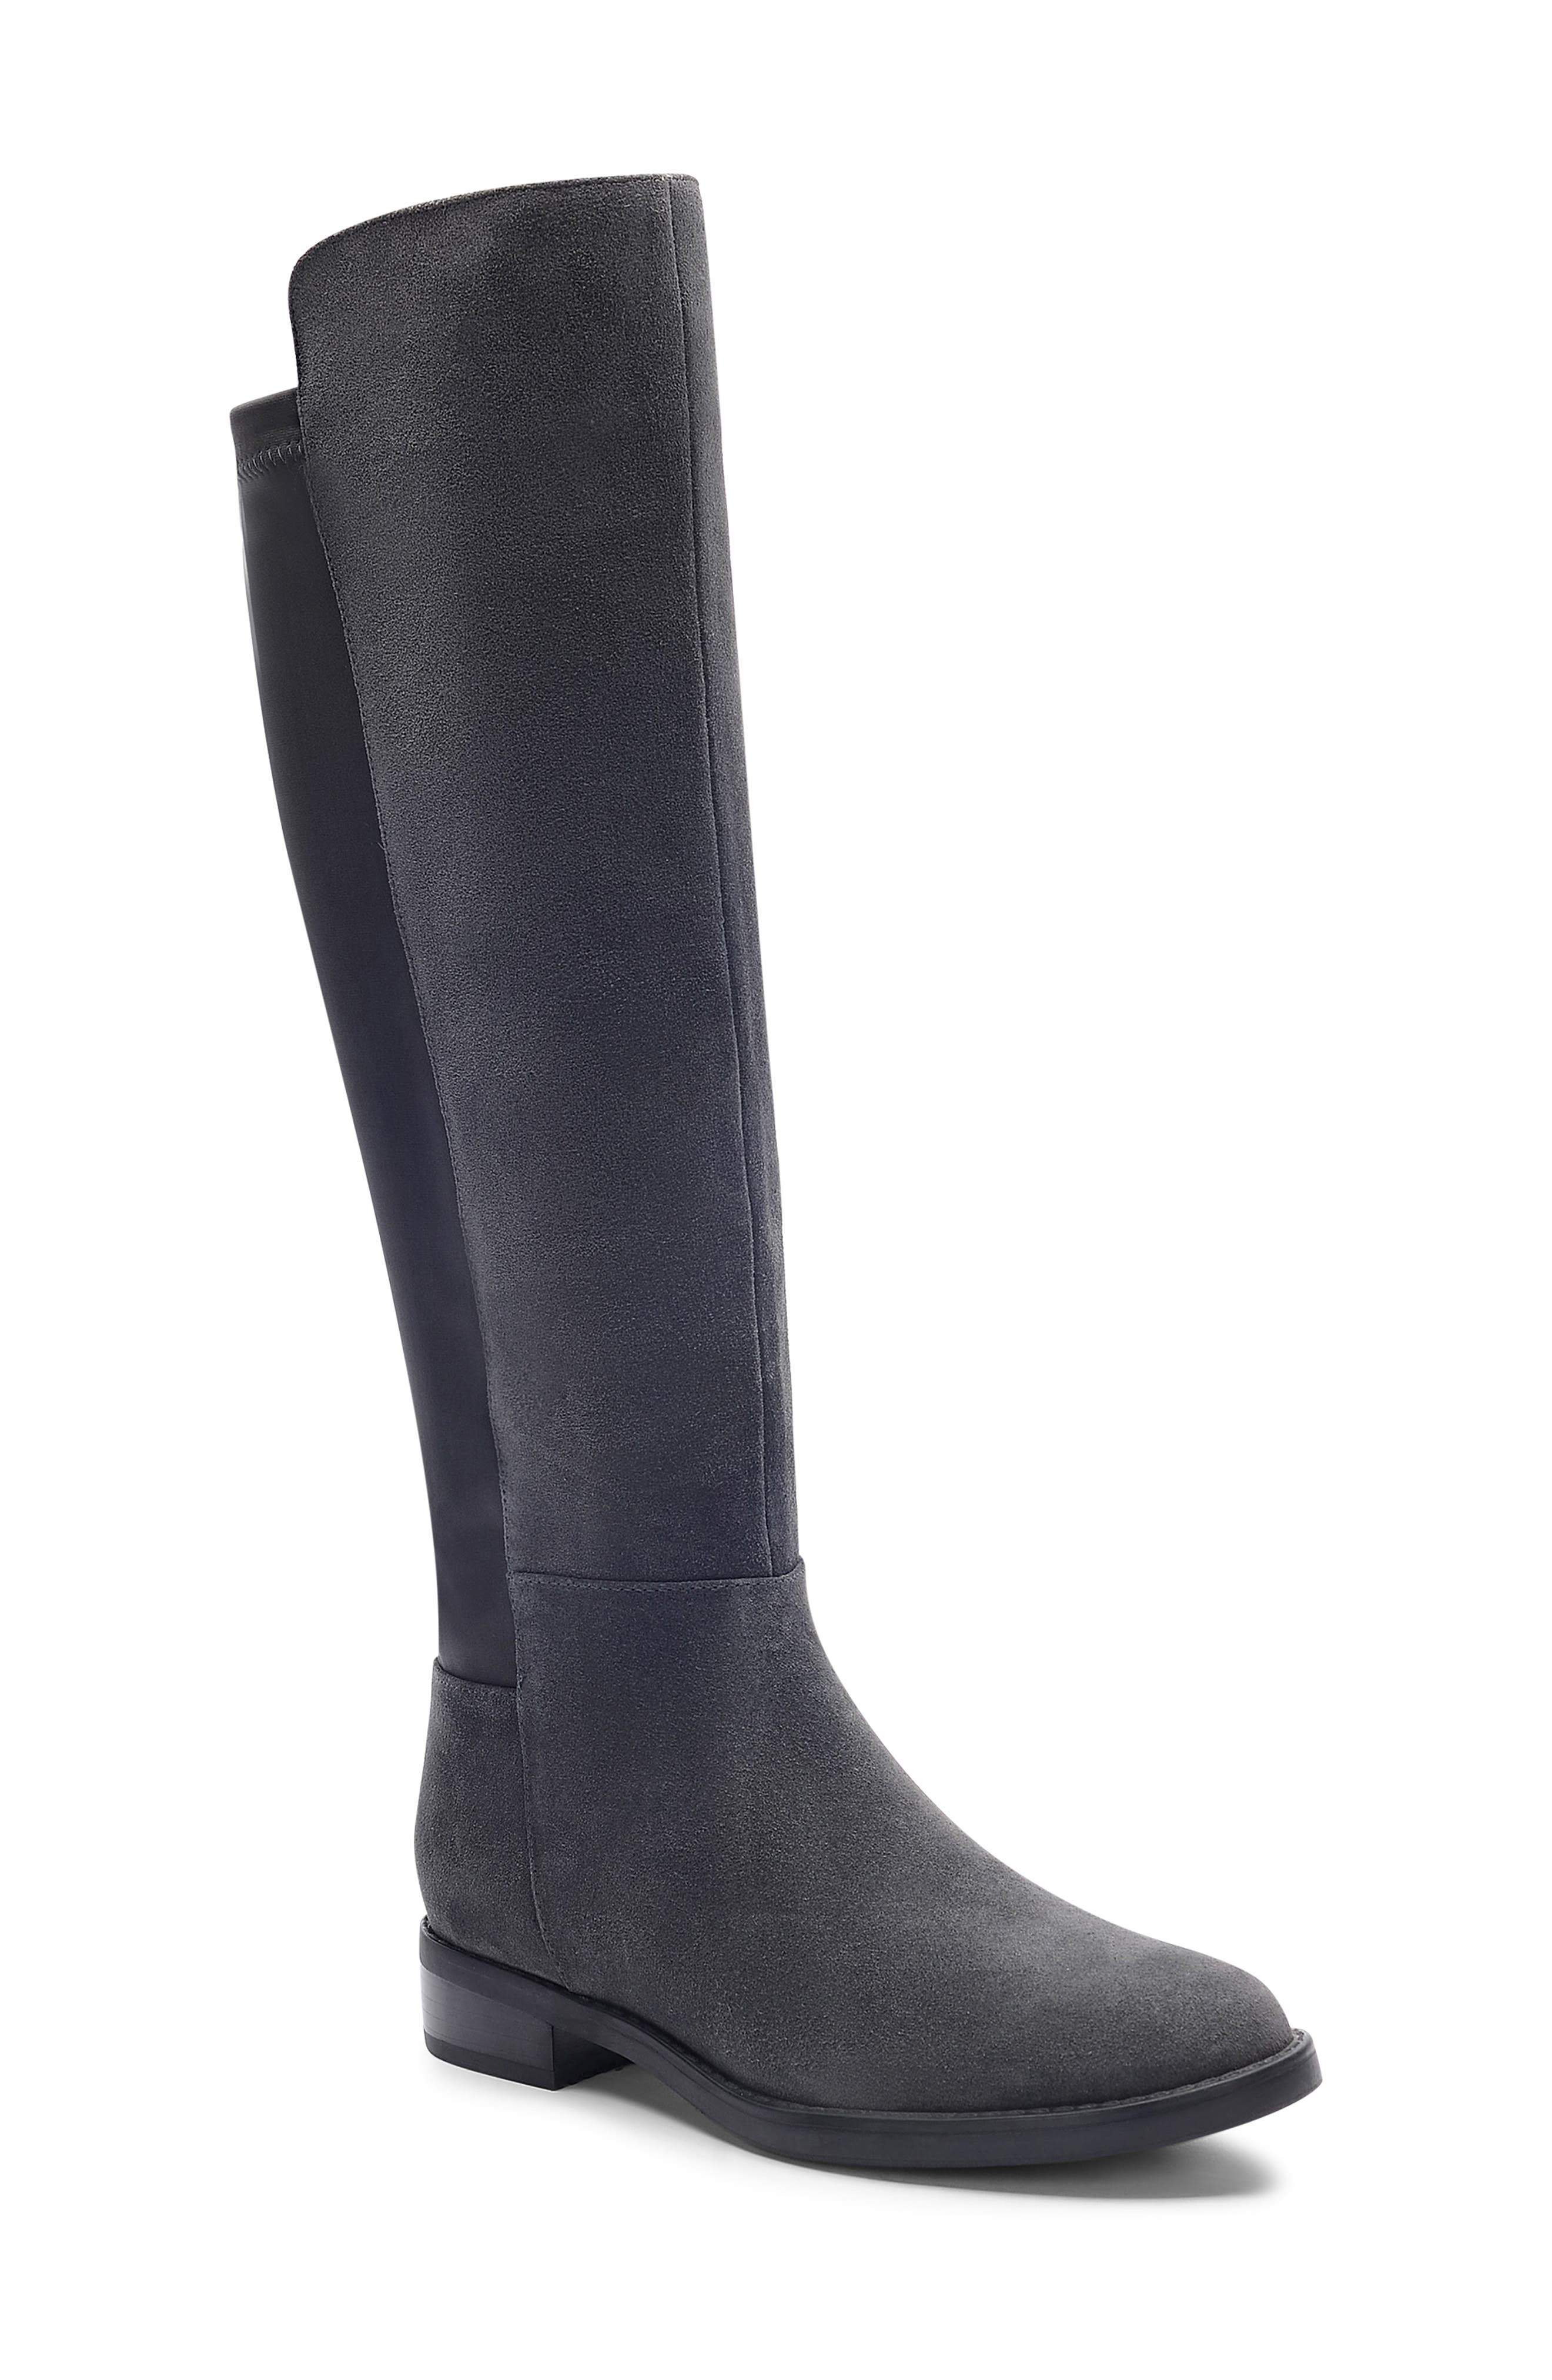 Ellie Waterproof Knee High Riding Boot,                         Main,                         color, DARK GREY SUEDE